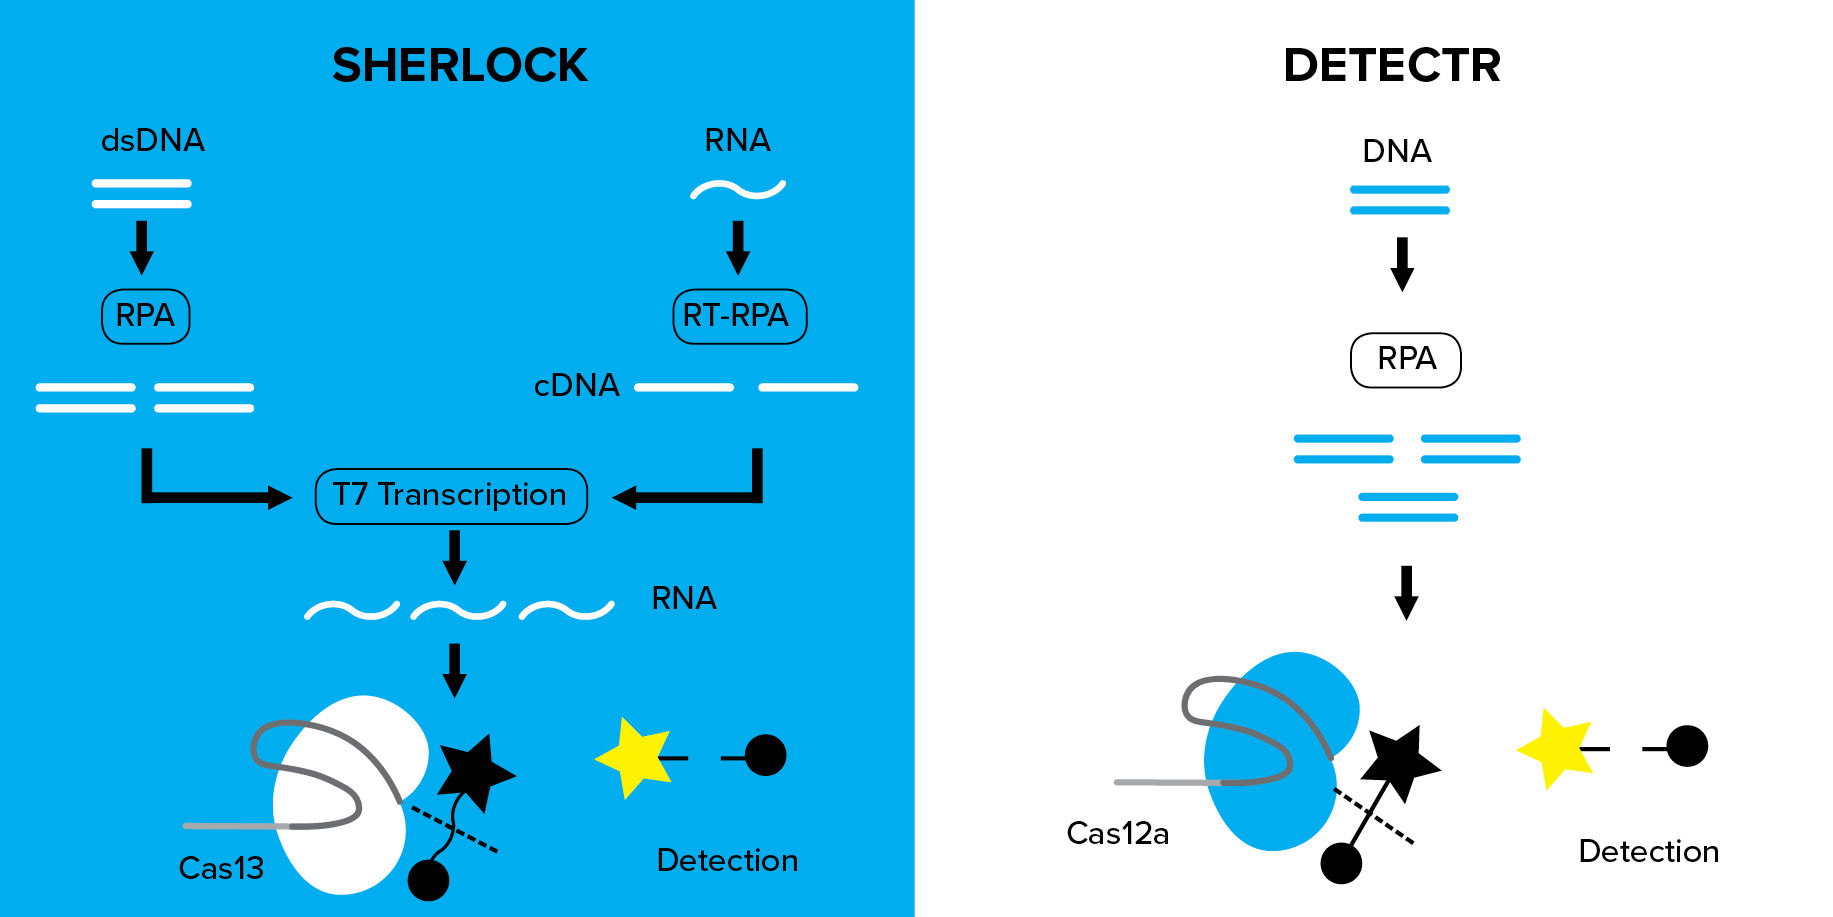 comparison between SHERLOCK and DETECTR nucleic acid detection methods